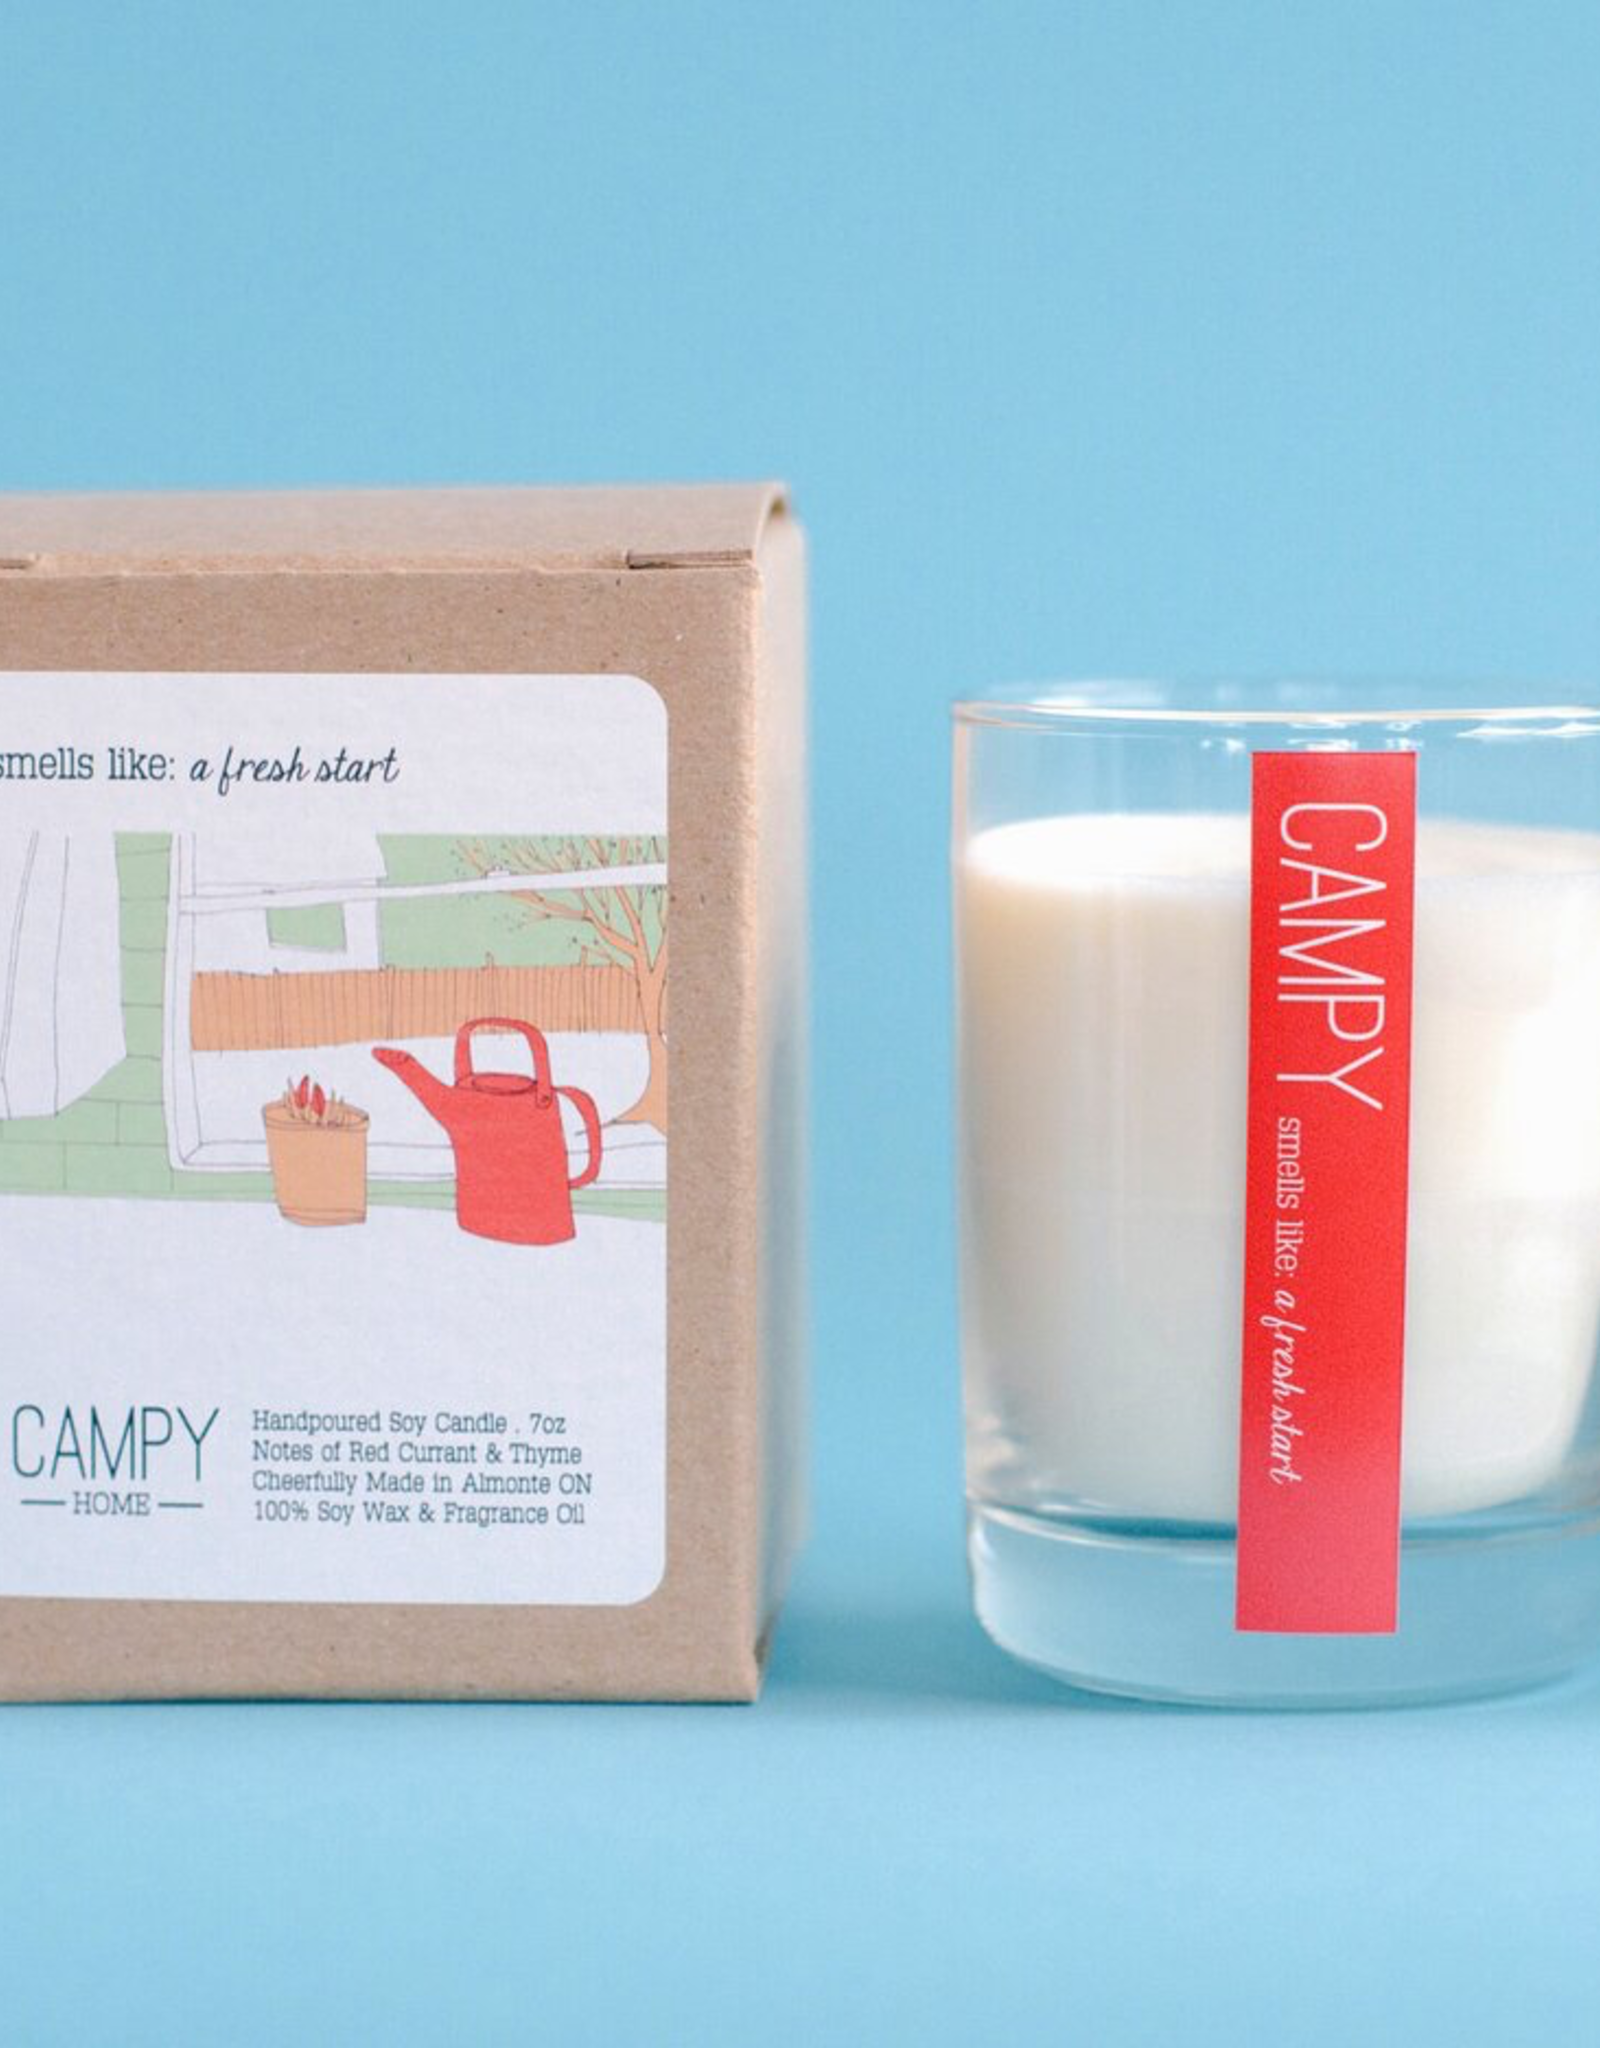 Campy Home Campy Home Fresh Start Candle